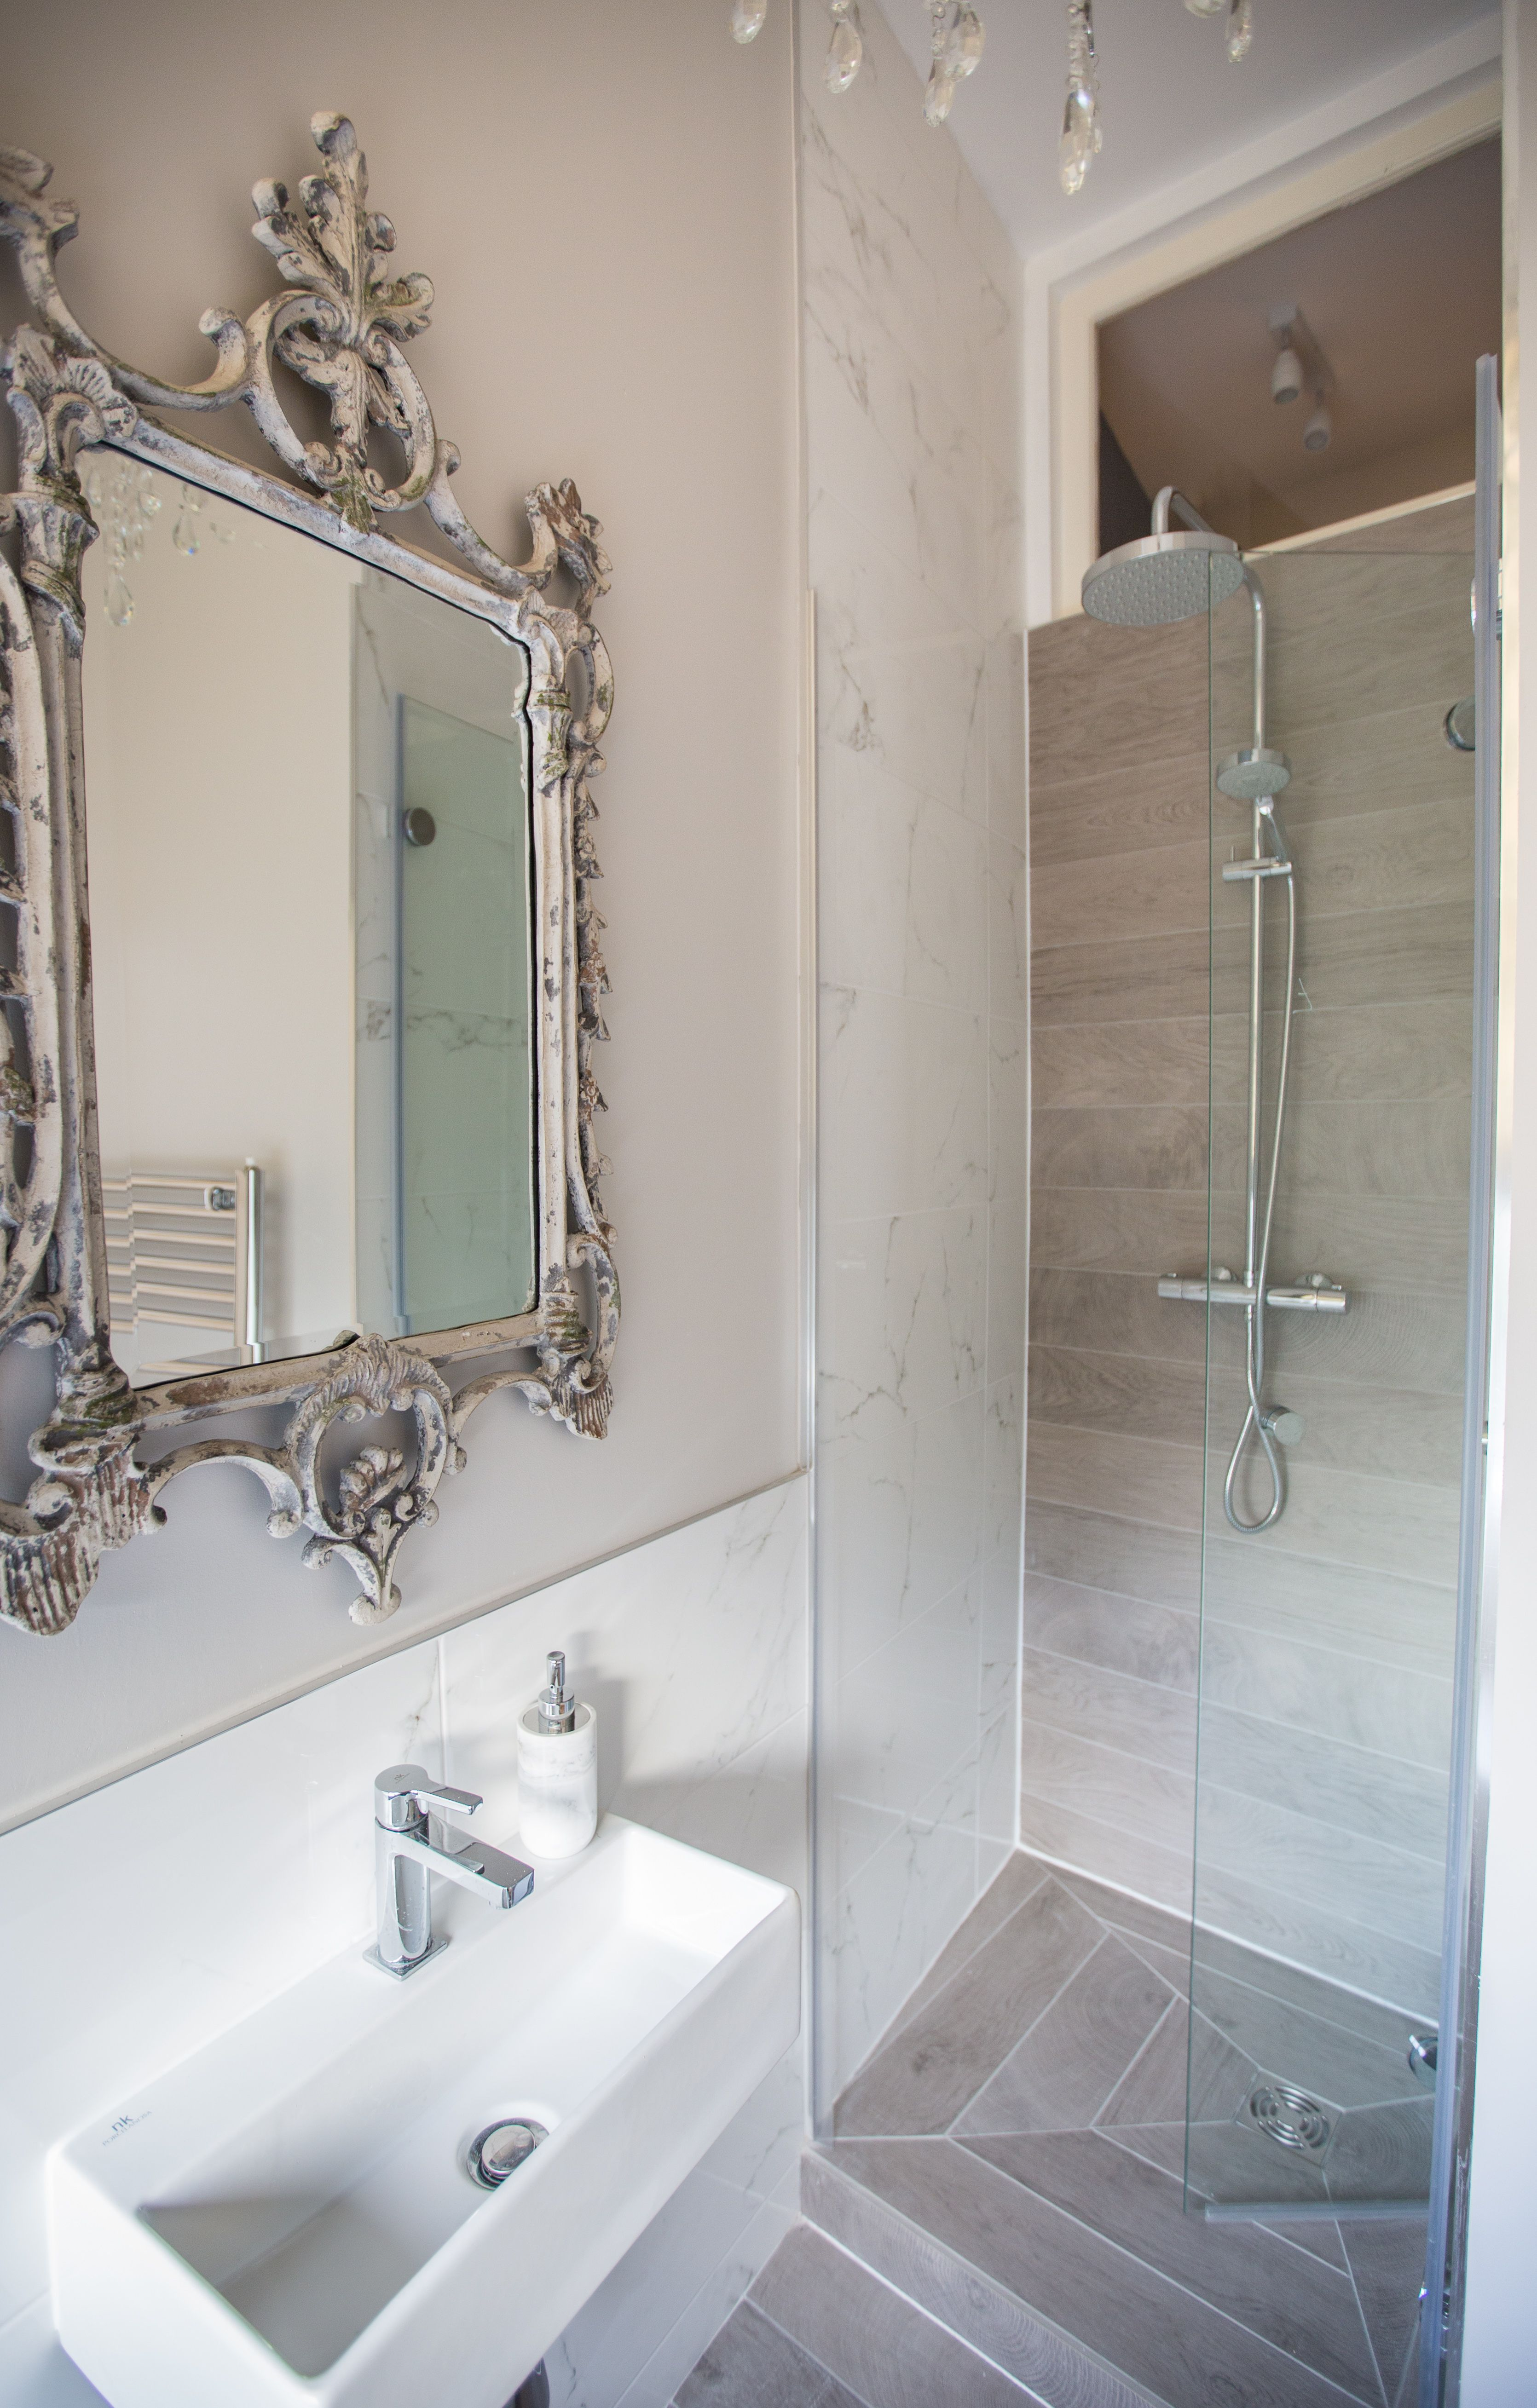 Bathroom Showrooms Hillington Glasgow - All About Bathroom